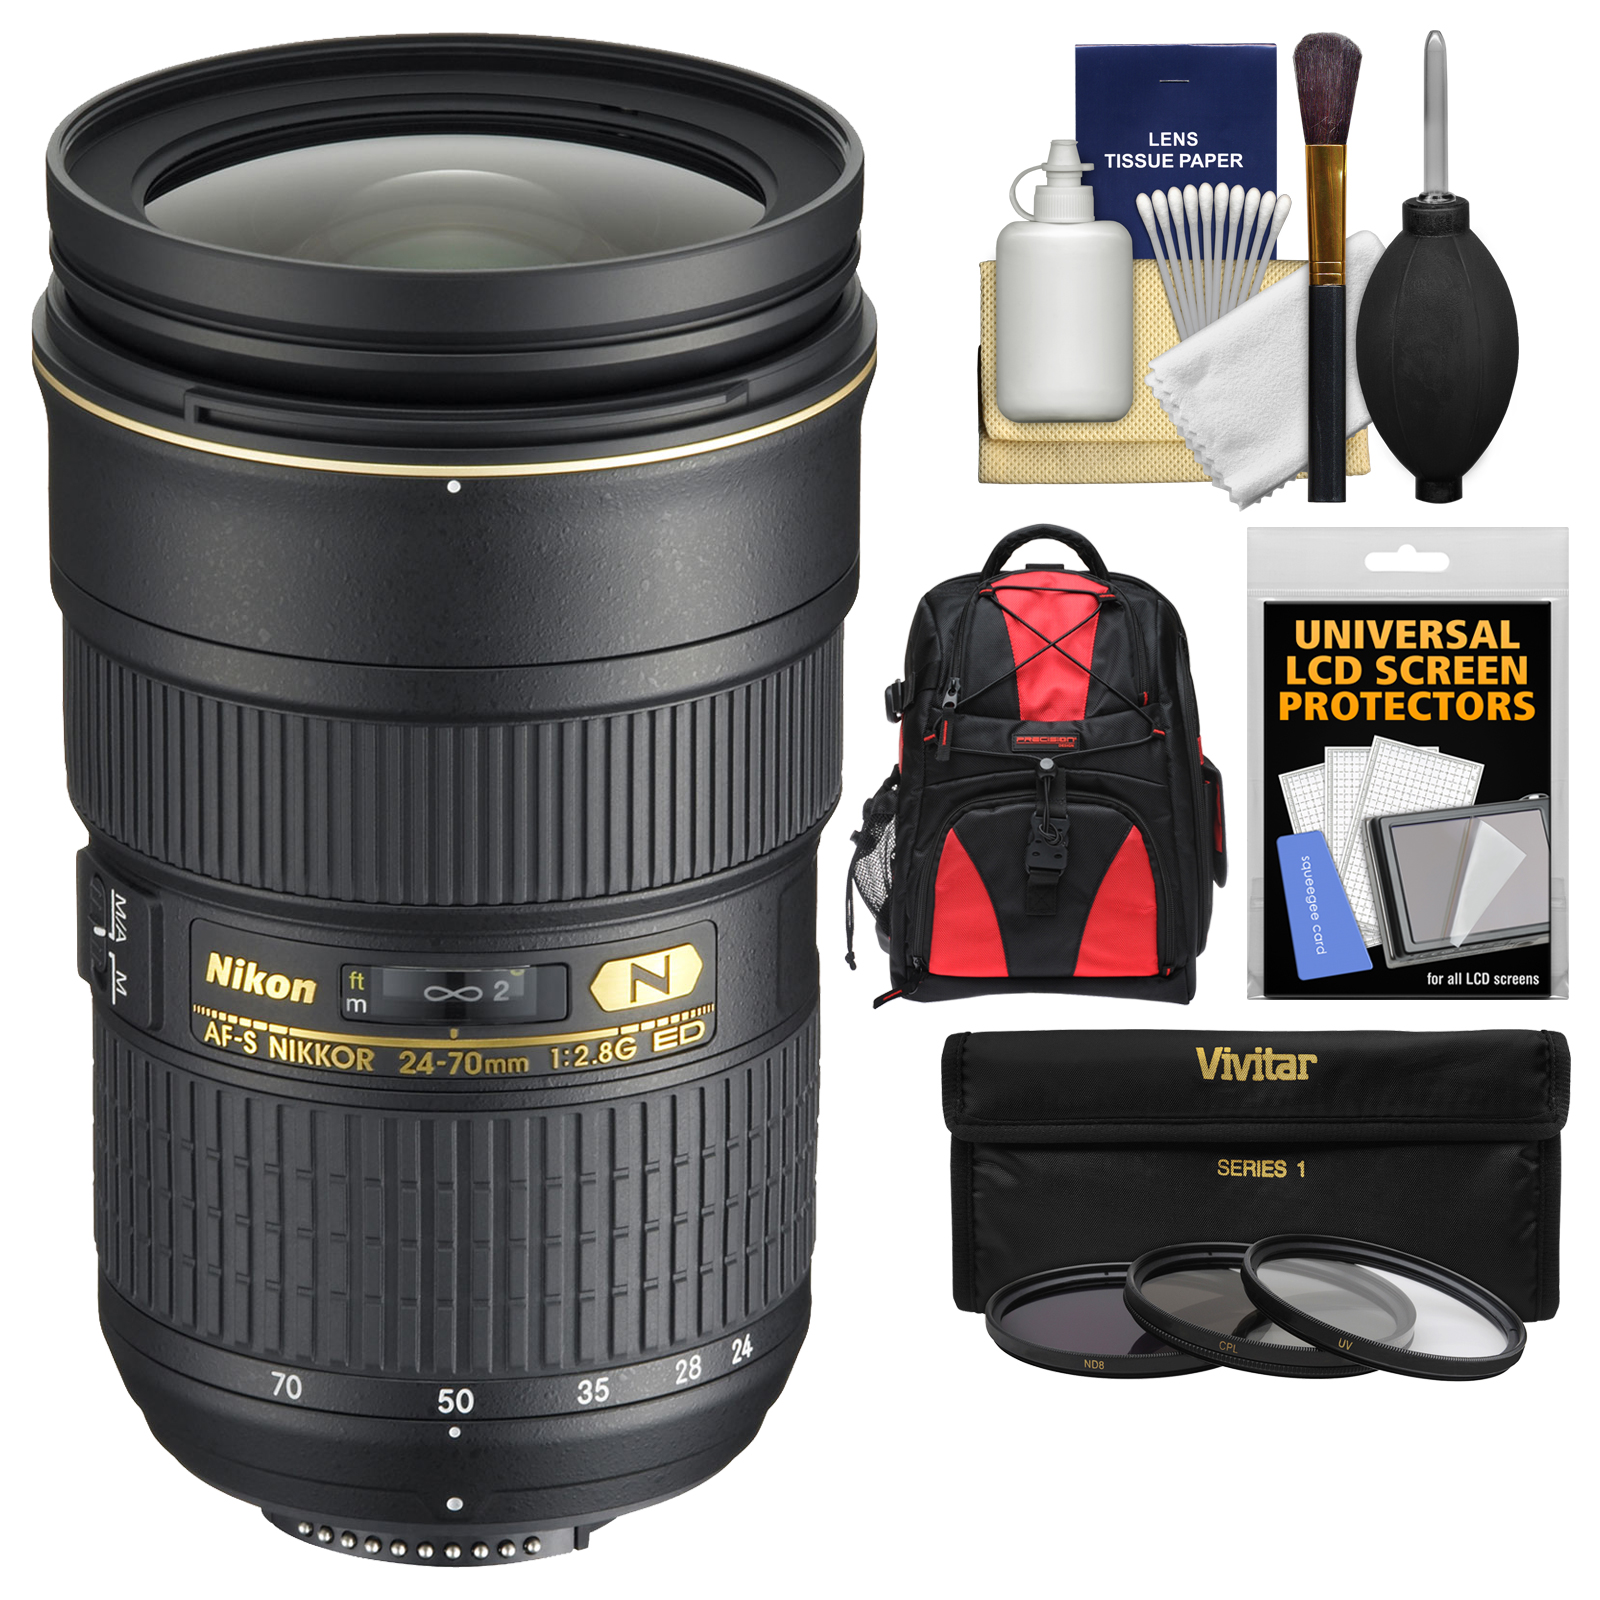 Nikon 24-70mm f/2.8G AF-S ED Zoom-Nikkor Lens - Factory Refurbished with Backpack + 3 (UV/ND8/CPL) Filters + Accessory Kit